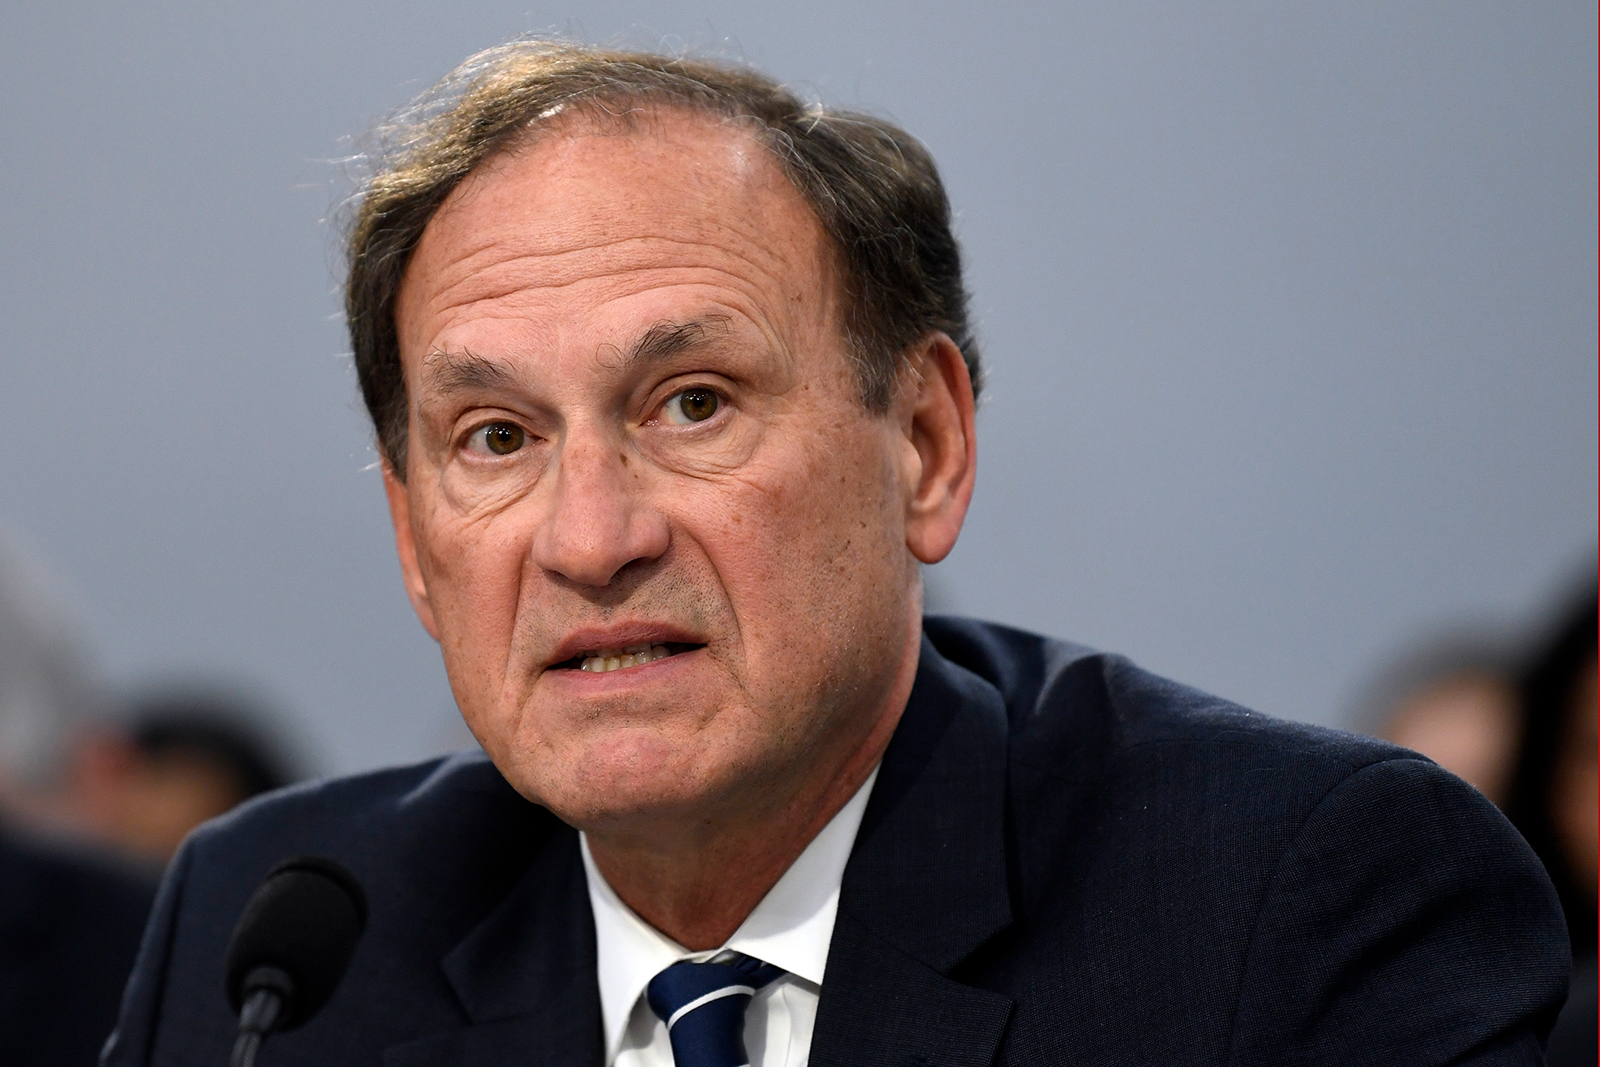 In this file photo, Supreme Court Justice Samuel Alito testifies before the House Appropriations Committee on Capitol Hill in Washington, on March 7, 2019.